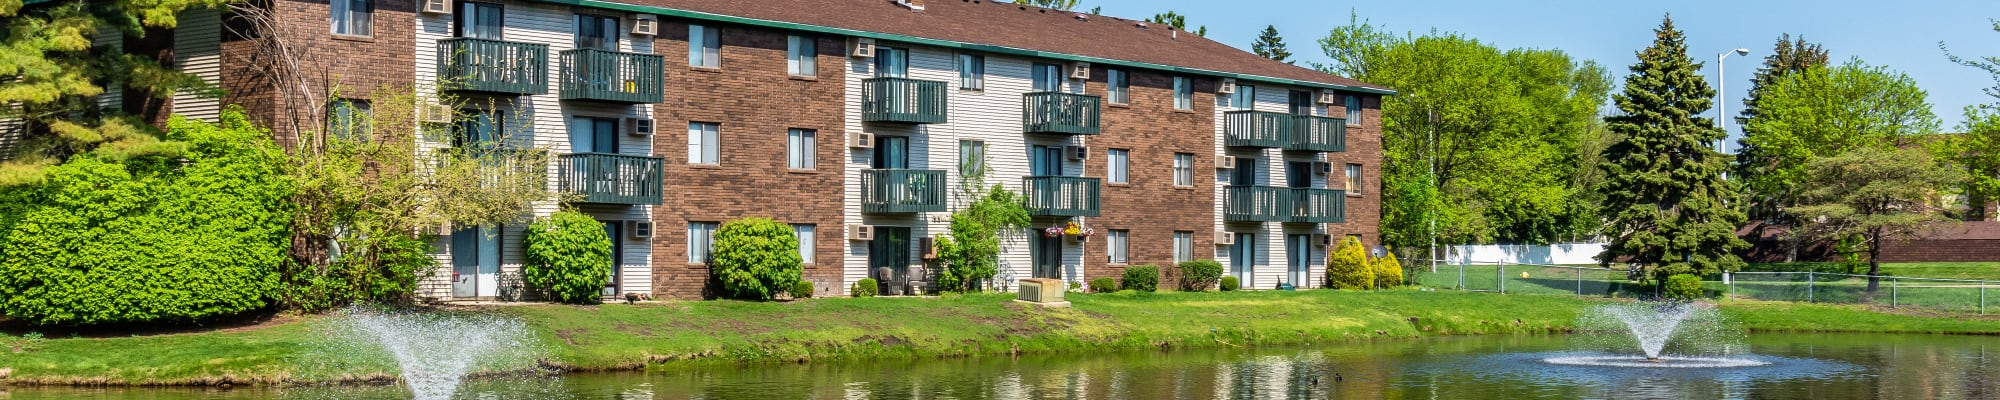 Contact Us at Oldebrook Apartments in Wyoming, Michigan